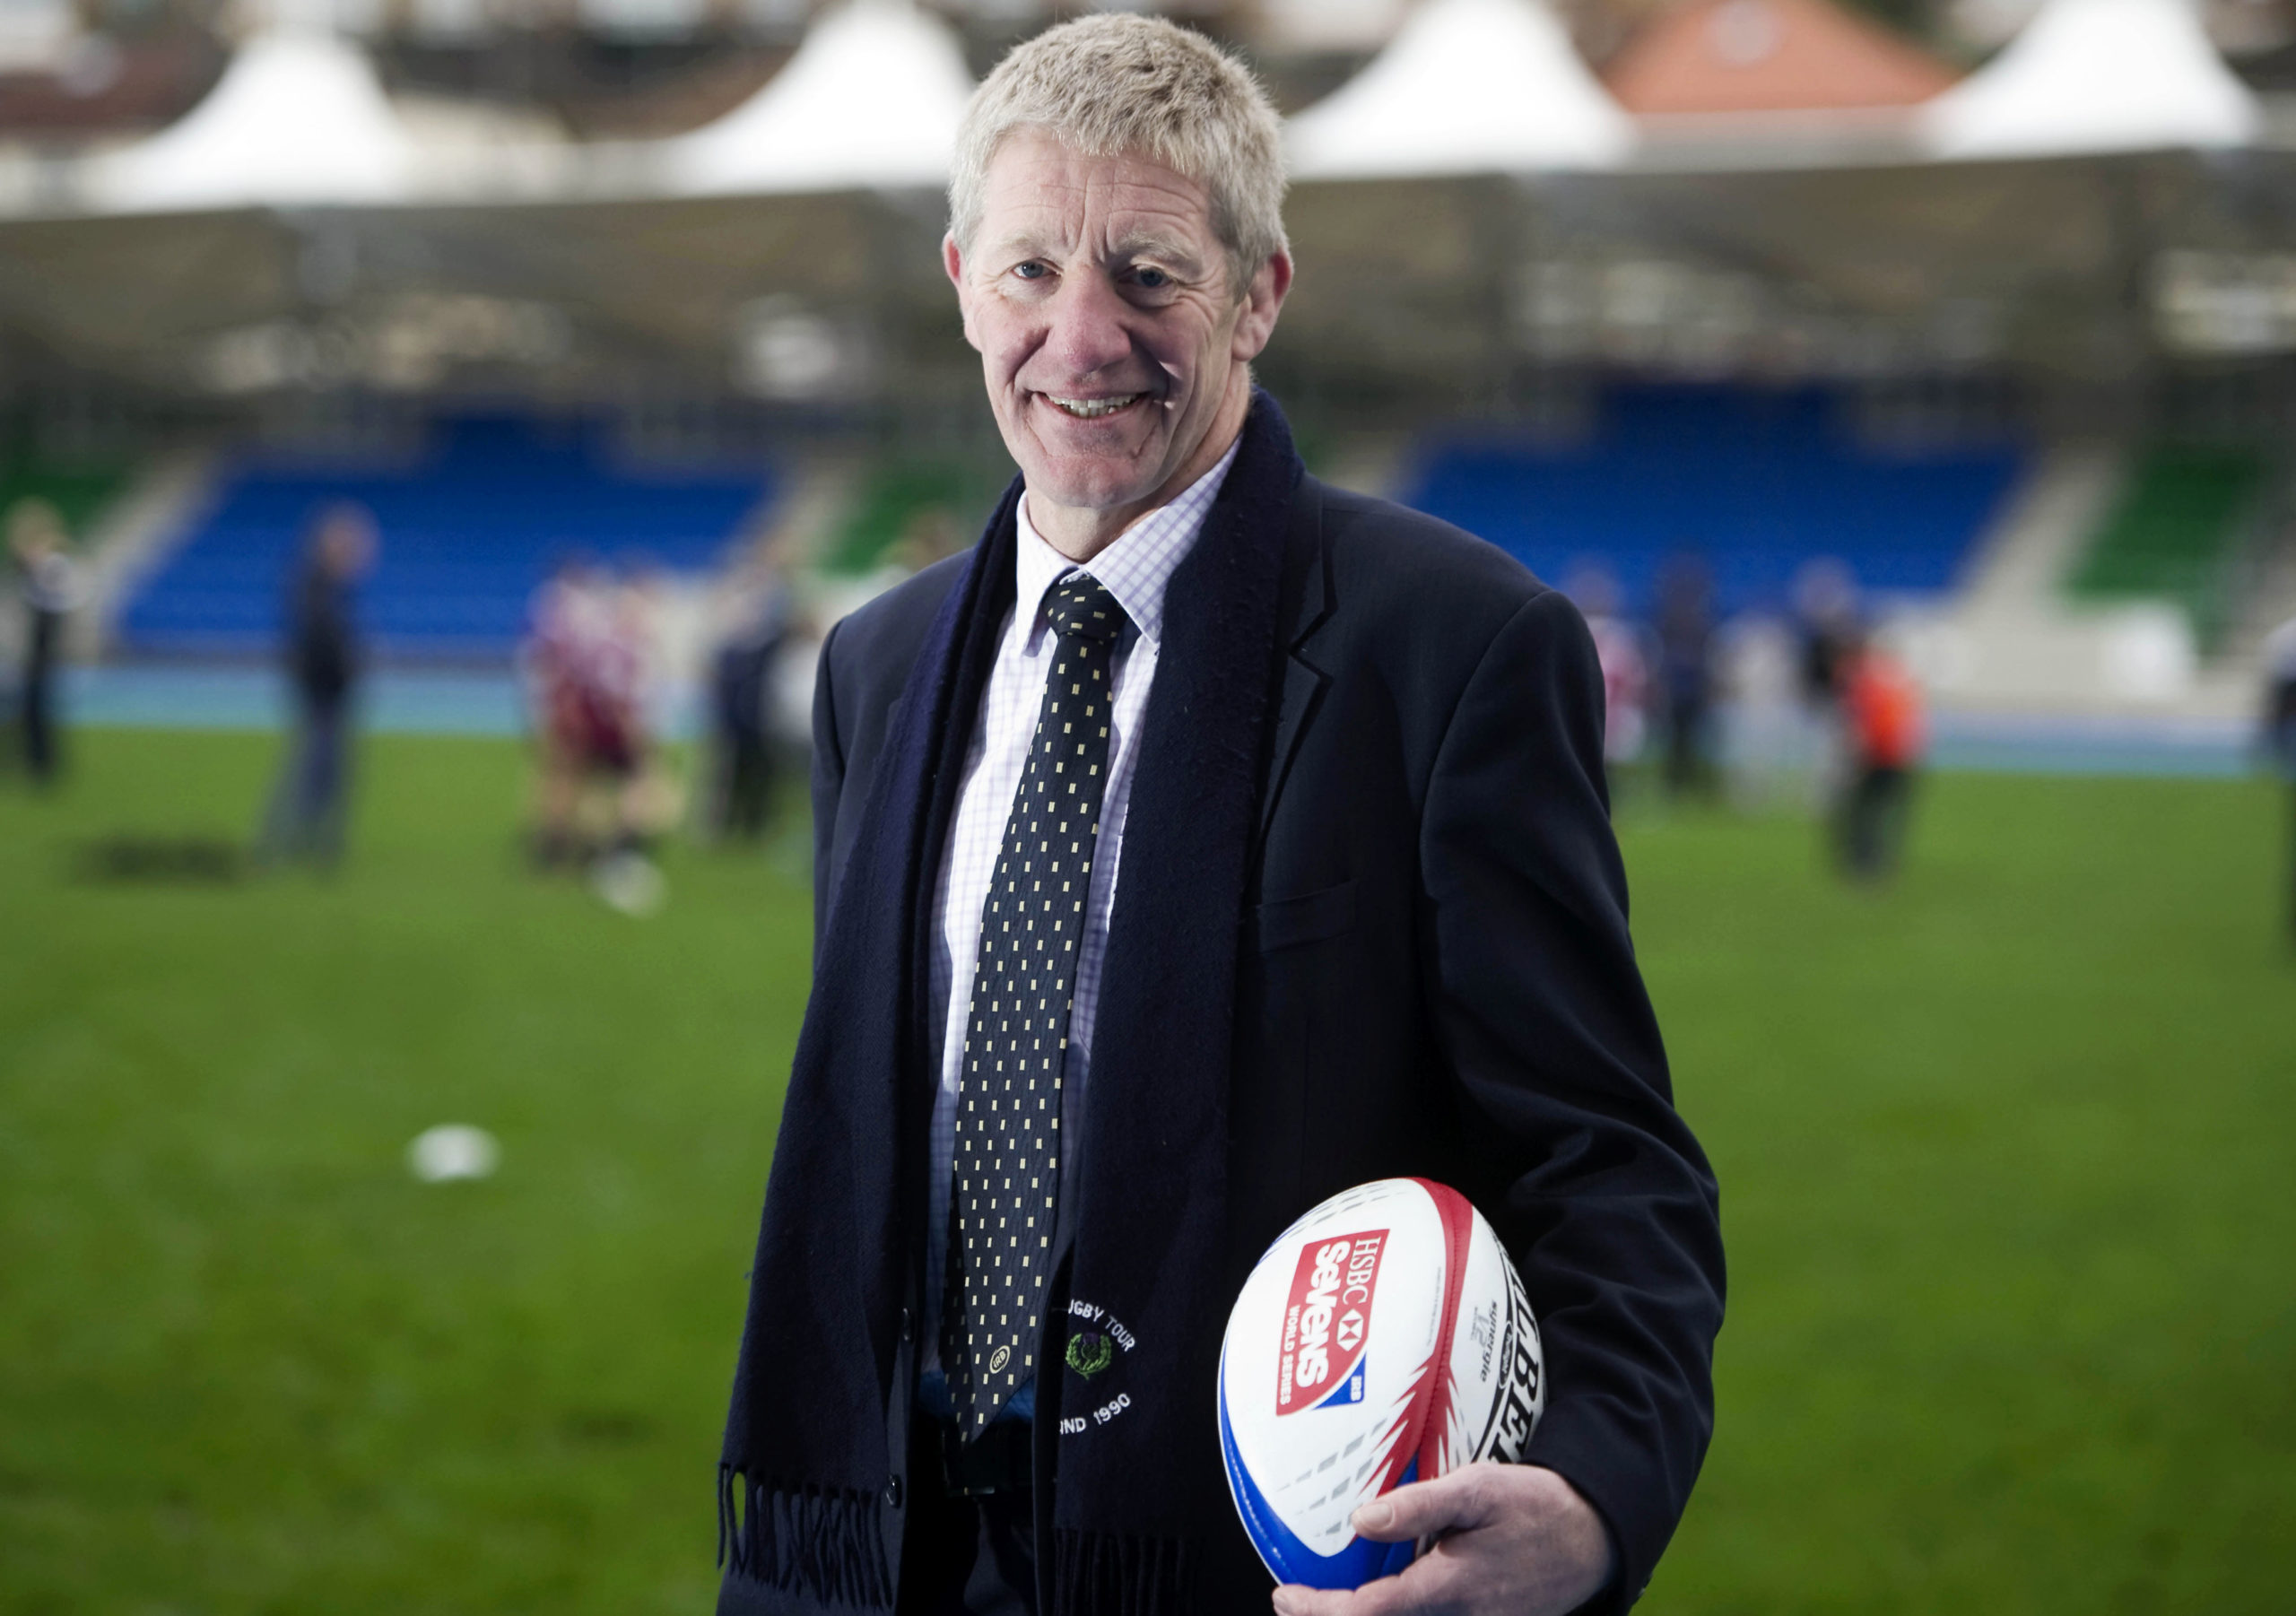 John Jeffrey is the new interim chairman of Scottish Rugby.